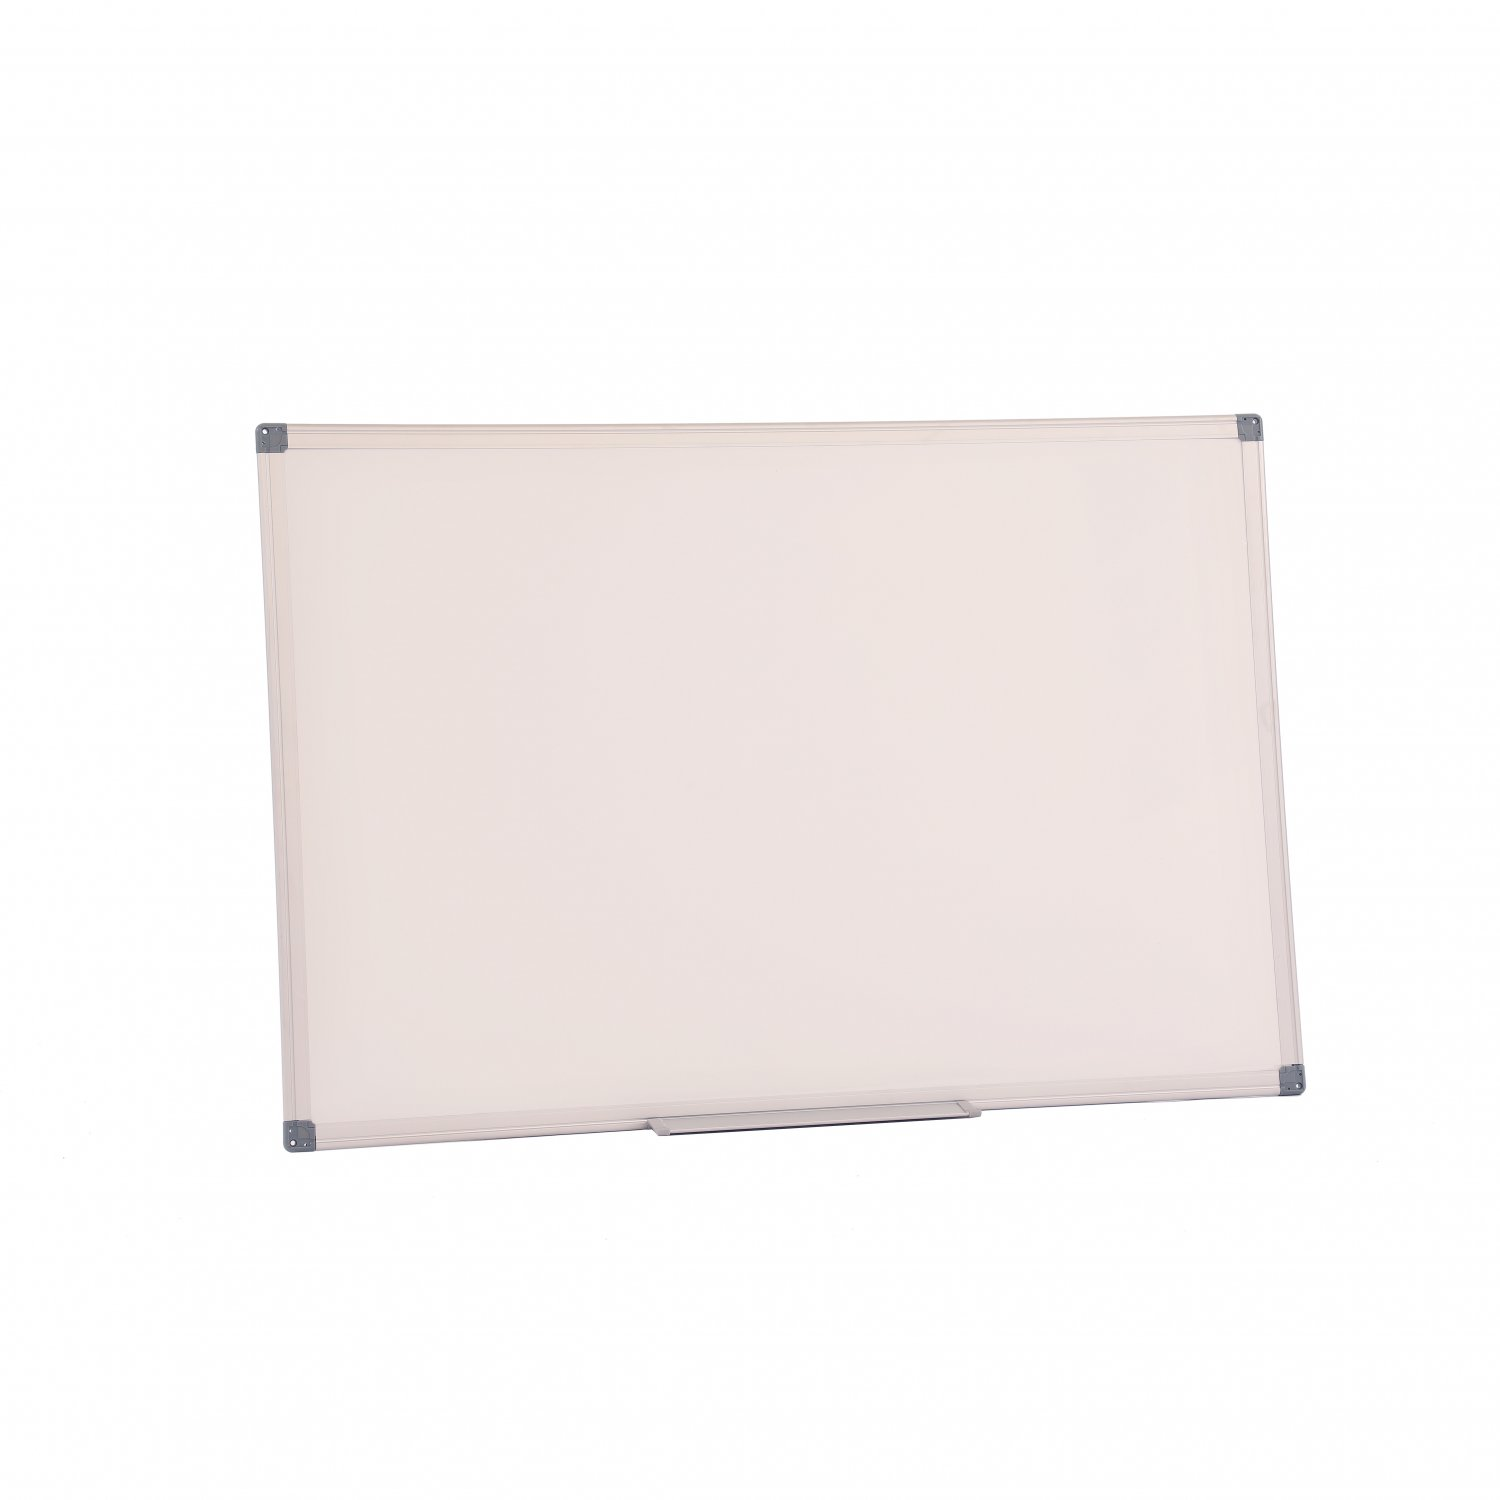 900mm x 600mm Drywipe Magnetic Whiteboard Office Wipe Board